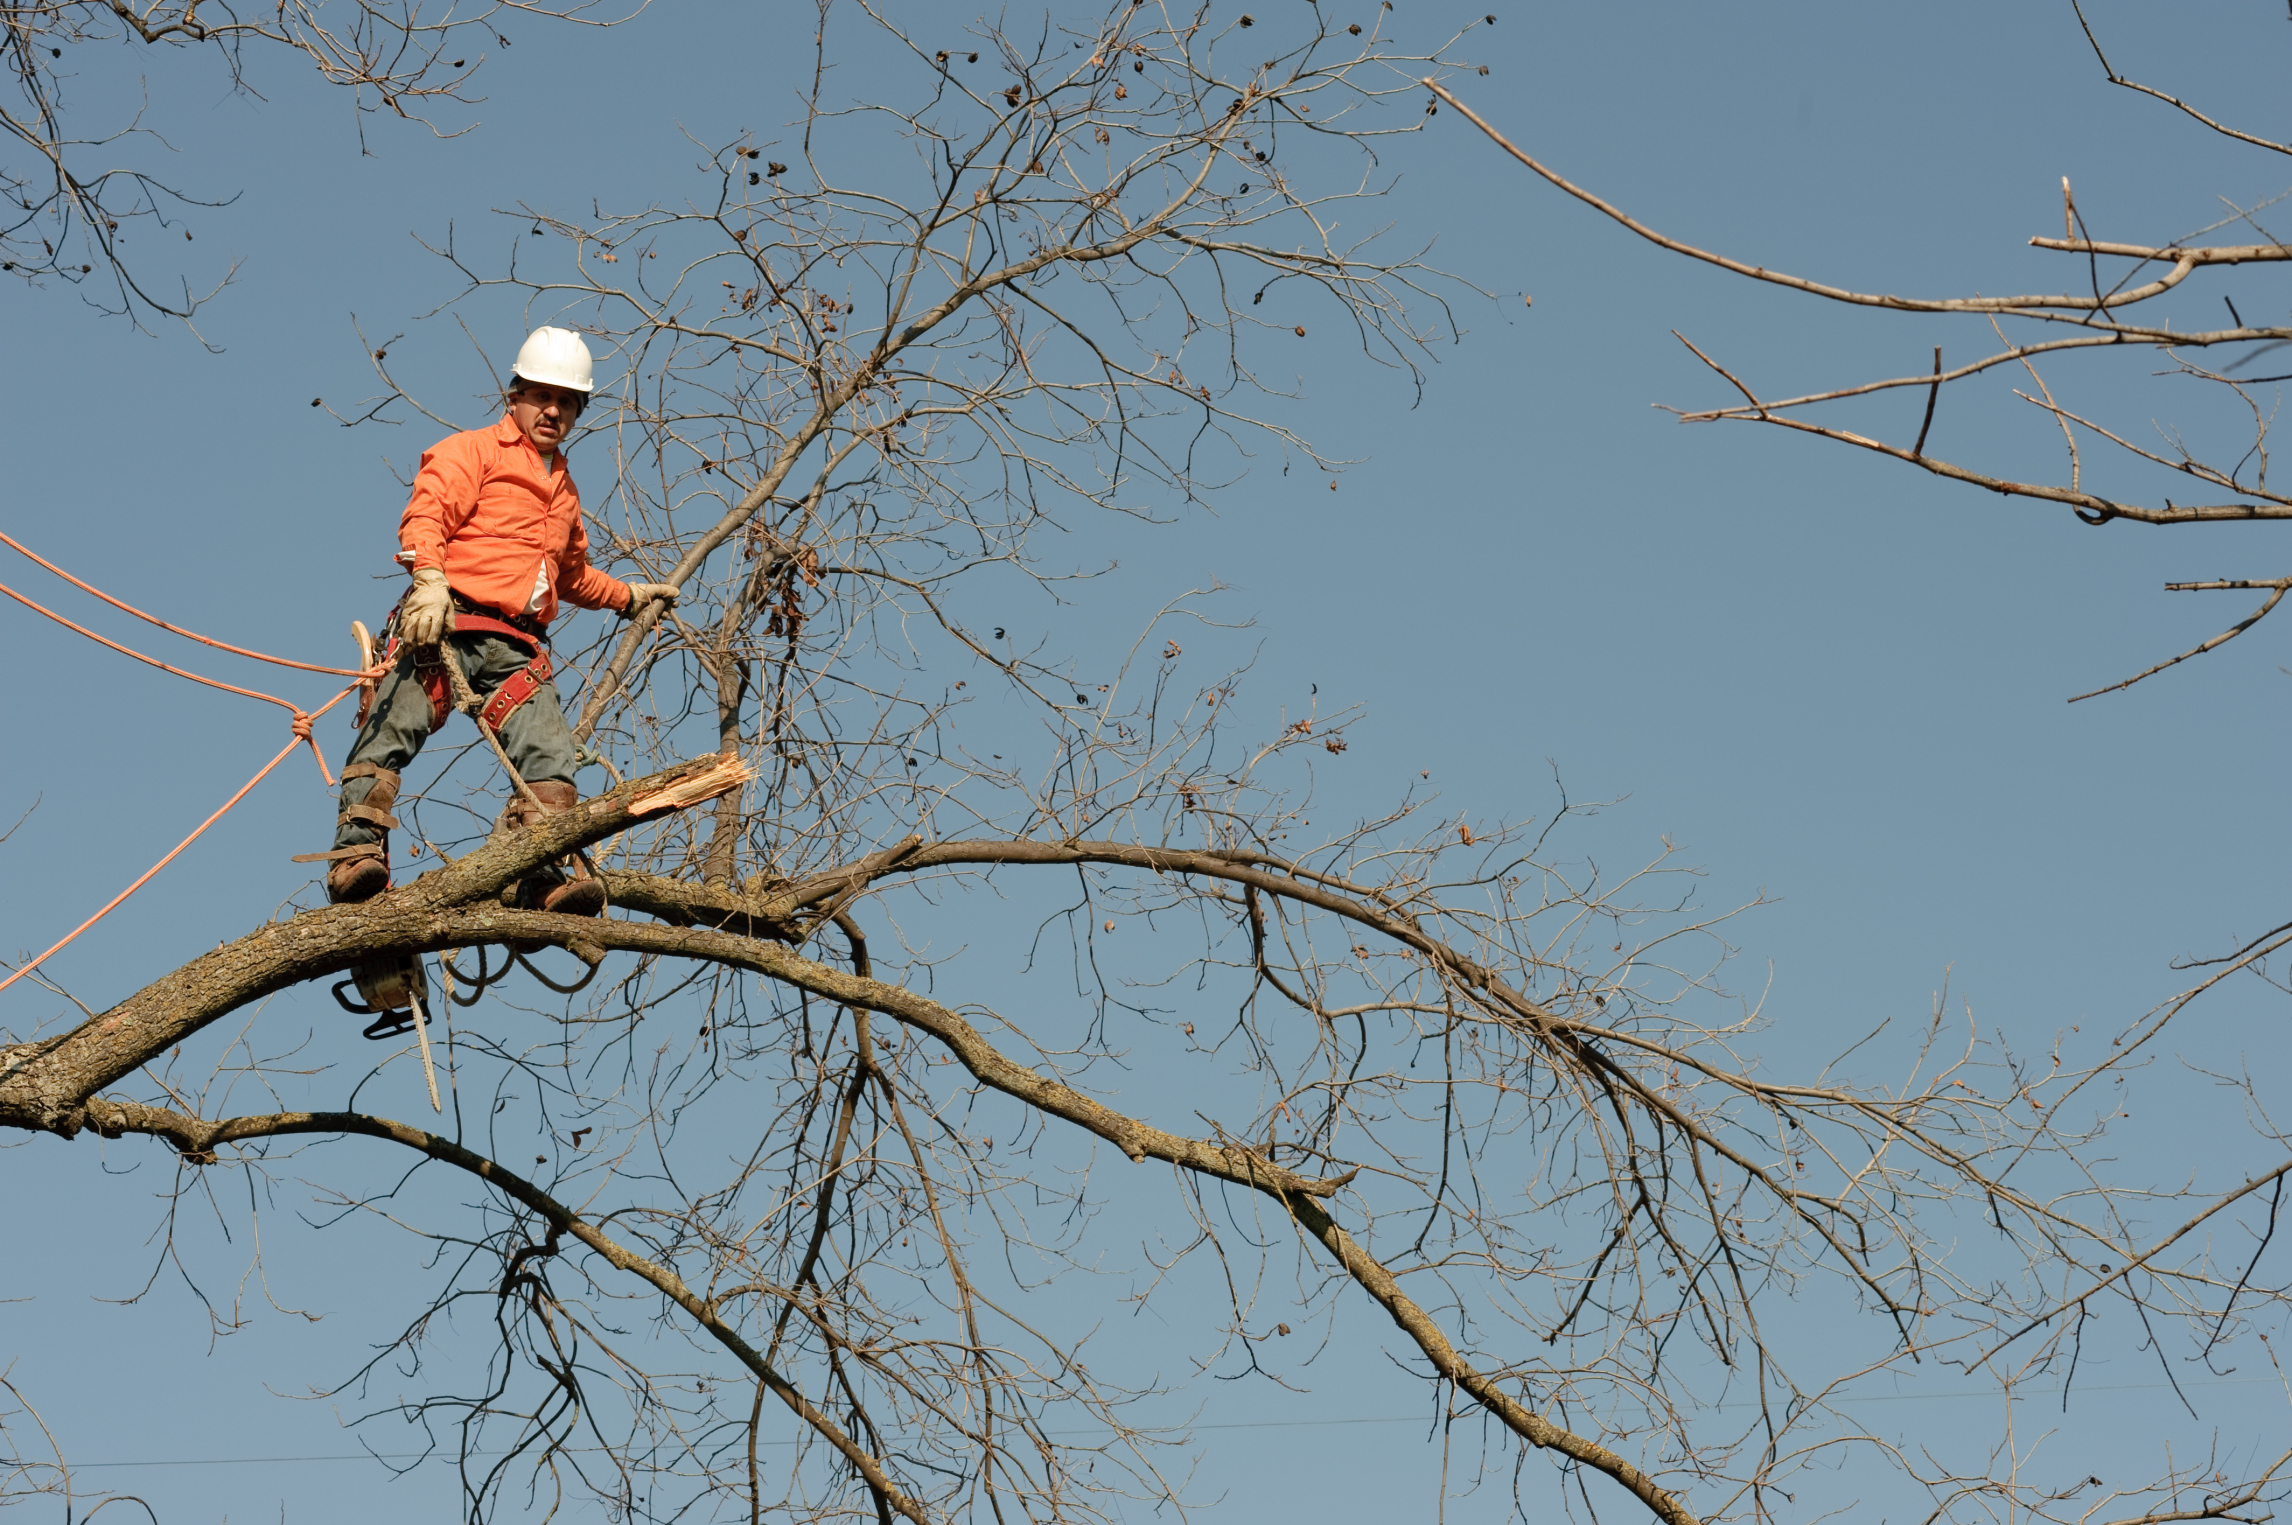 Rawls Tree Service Offers The Following Danger Removal Limbing Topping Chipping Cleanup Timber Falling Marketing Stump